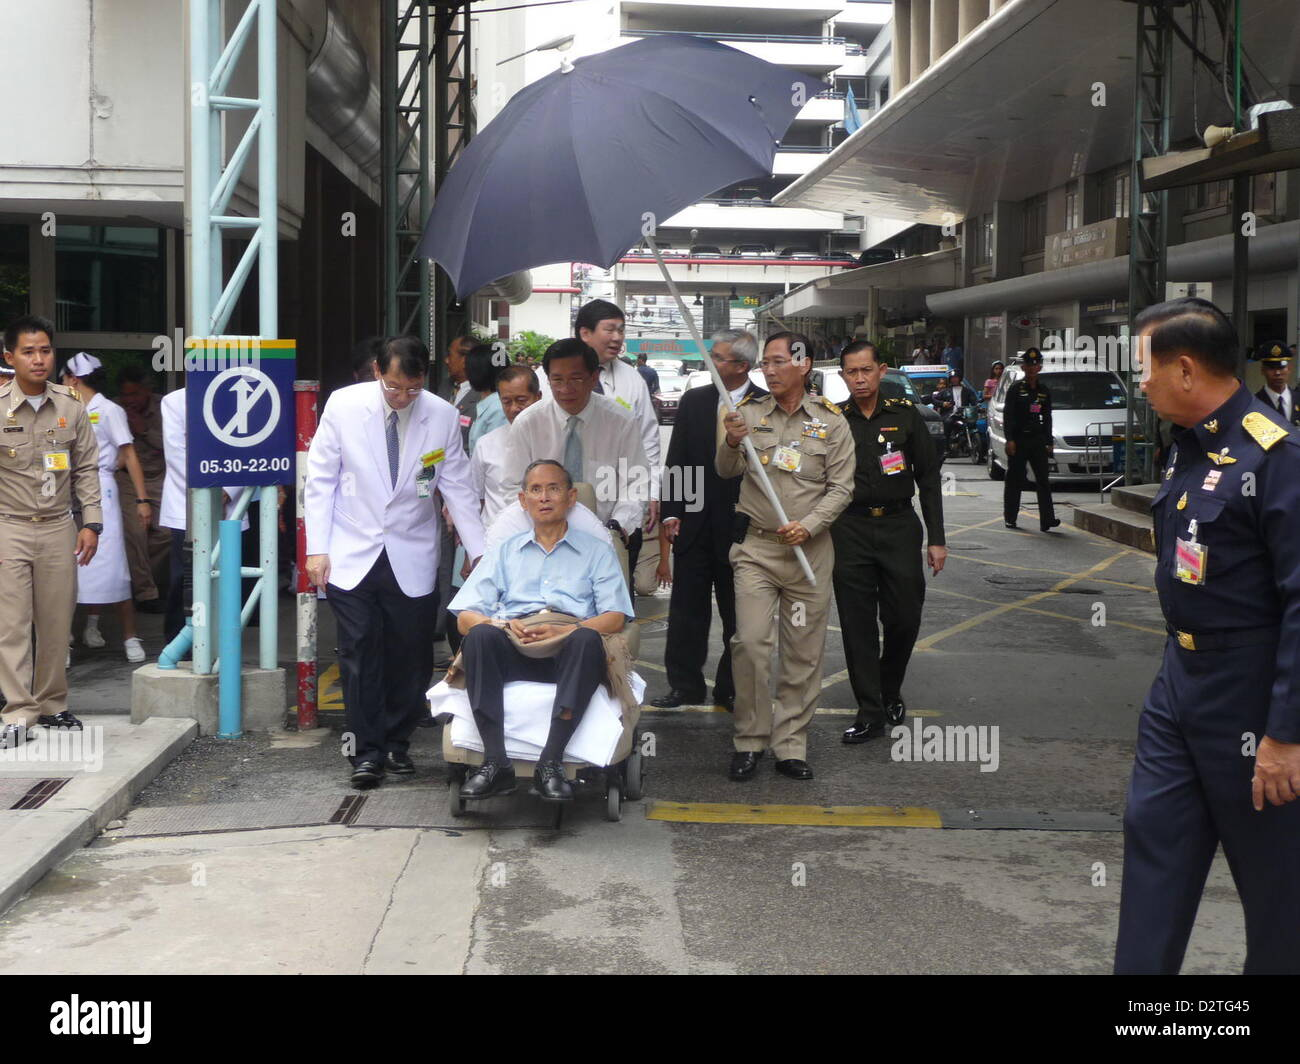 Thailand's revered 81-year-old King Bhumibol Adulyadej makes his first public appearance on October 23, 2009 - Stock Image